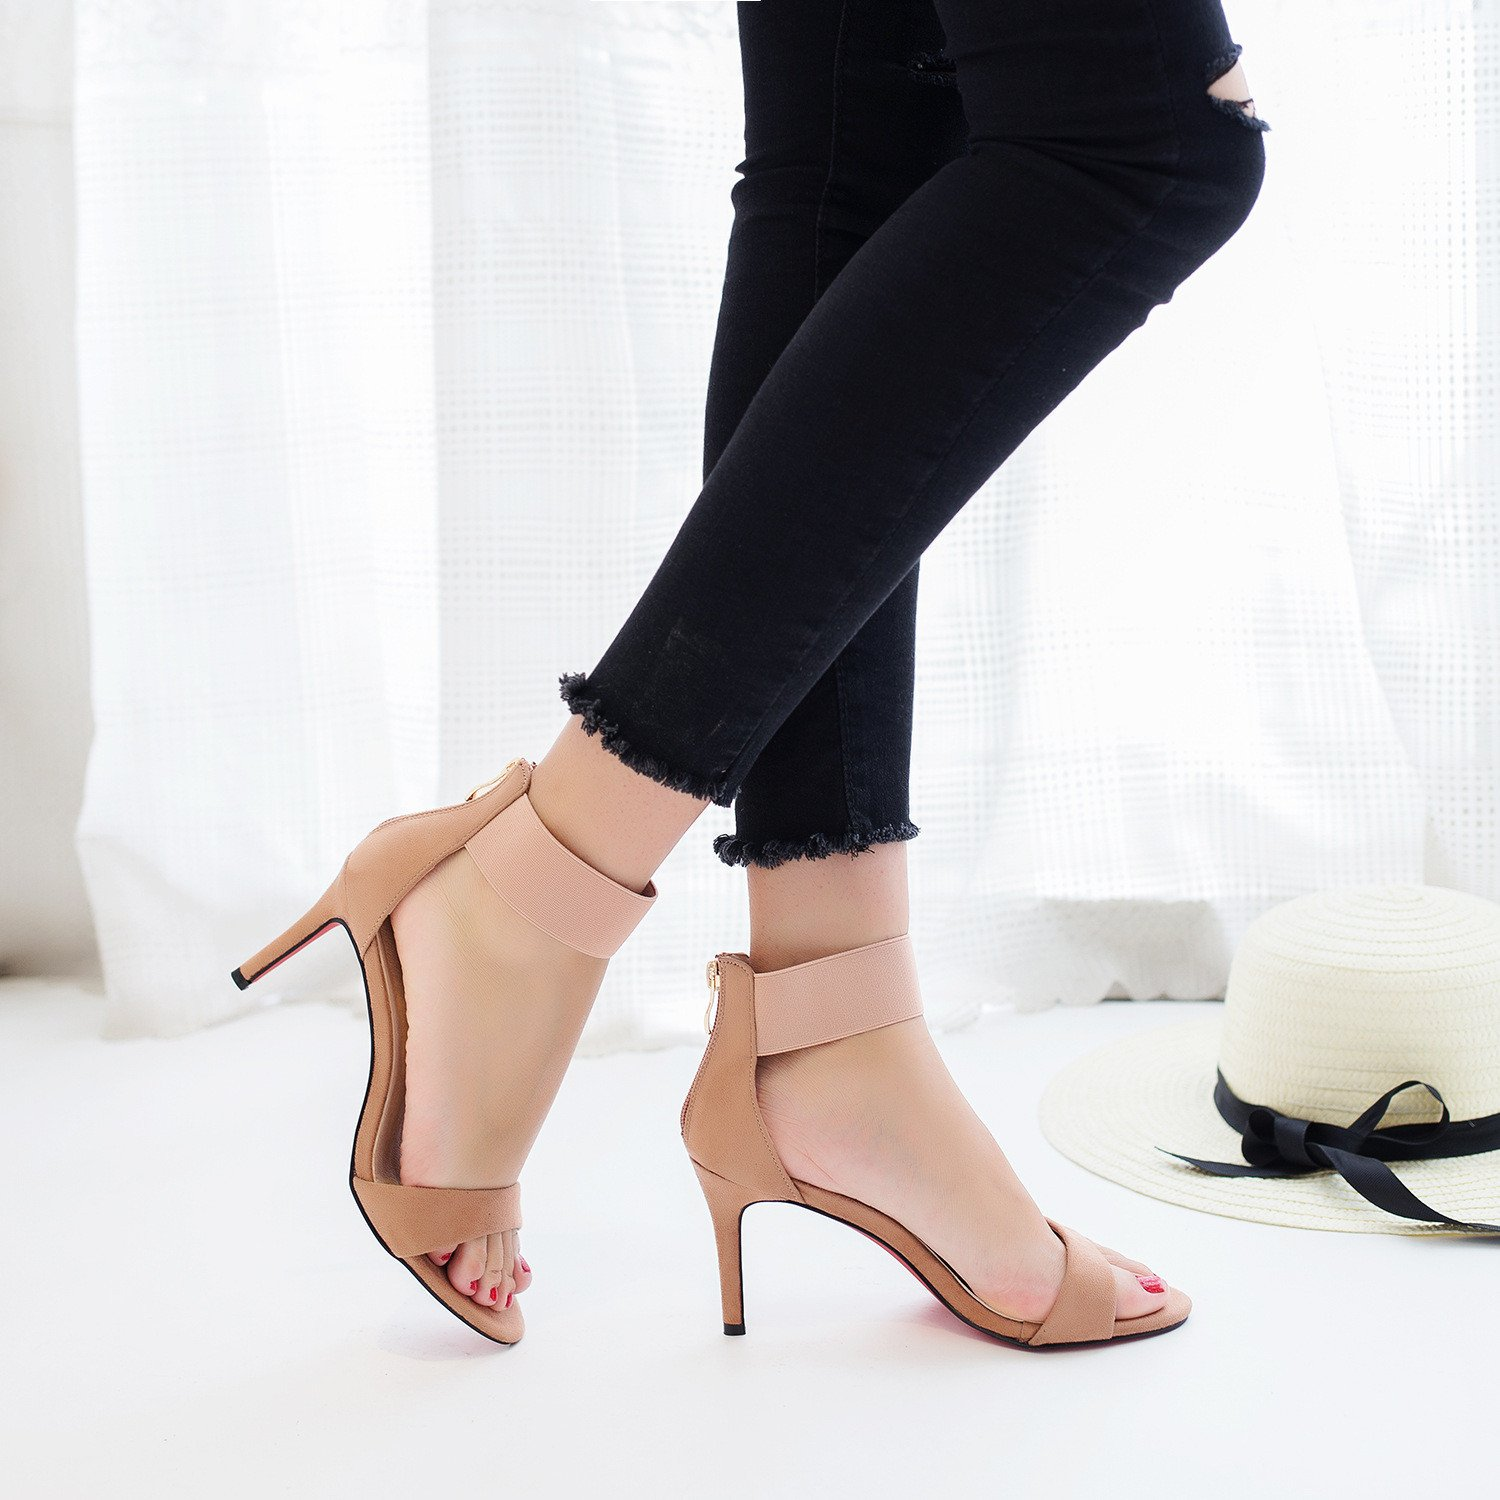 High-heeled sandals with high-heeled sandals women fine with velvet open toe, pink, 35 by YLSZ-High heels (Image #2)